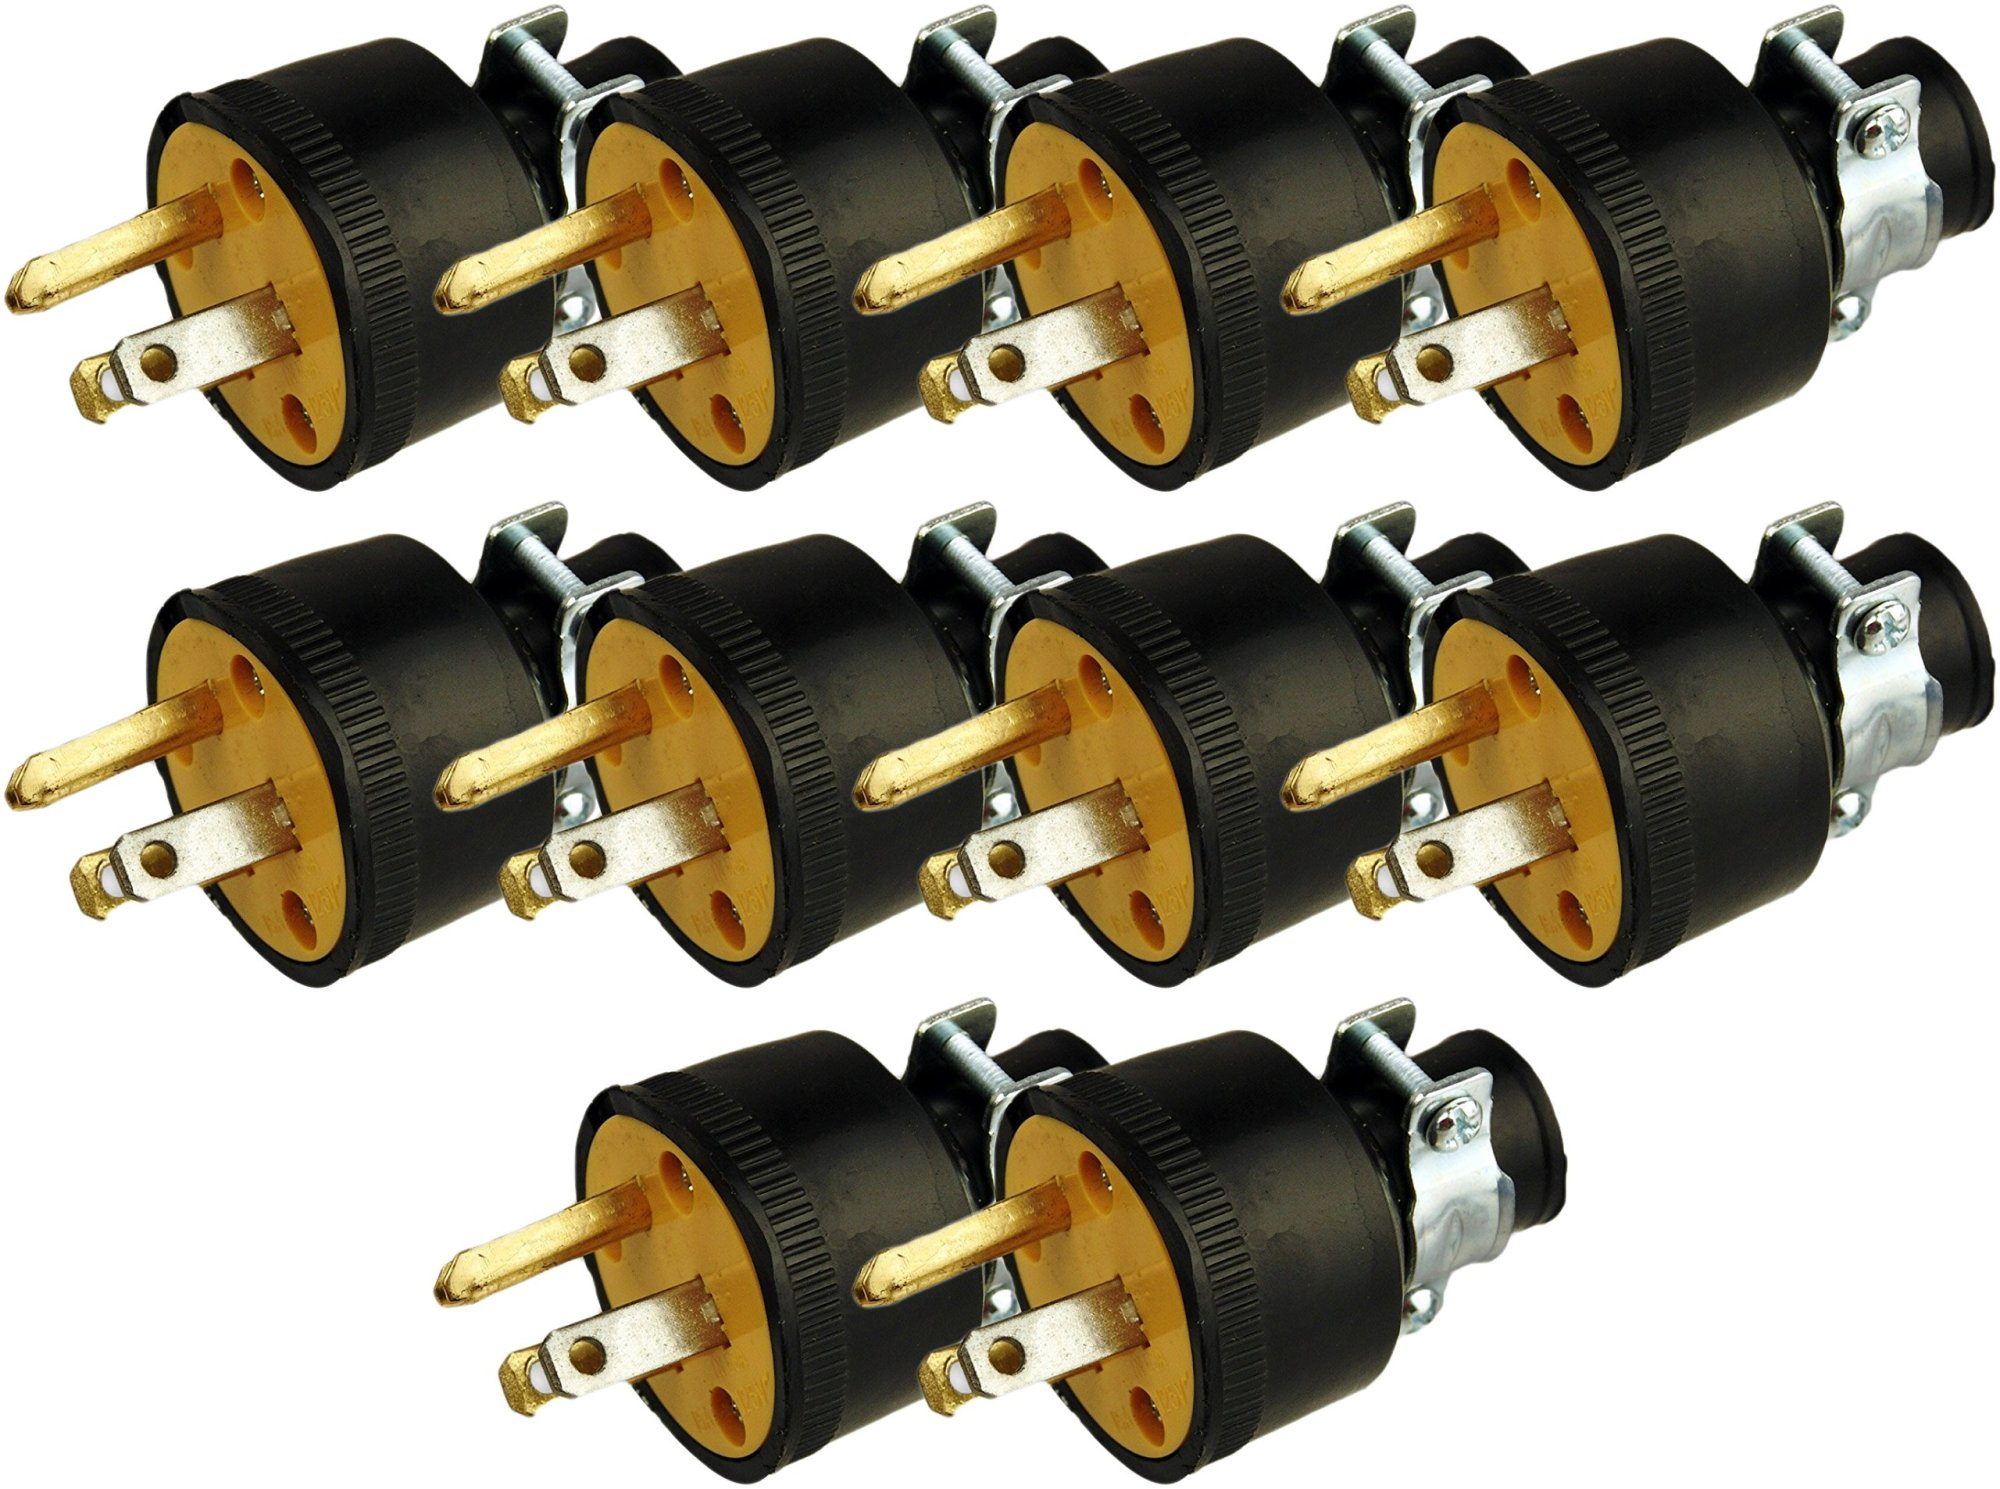 hight resolution of get quotations black duck brand male extension cord replacement electrical plugs end 10 male electrical plugs end